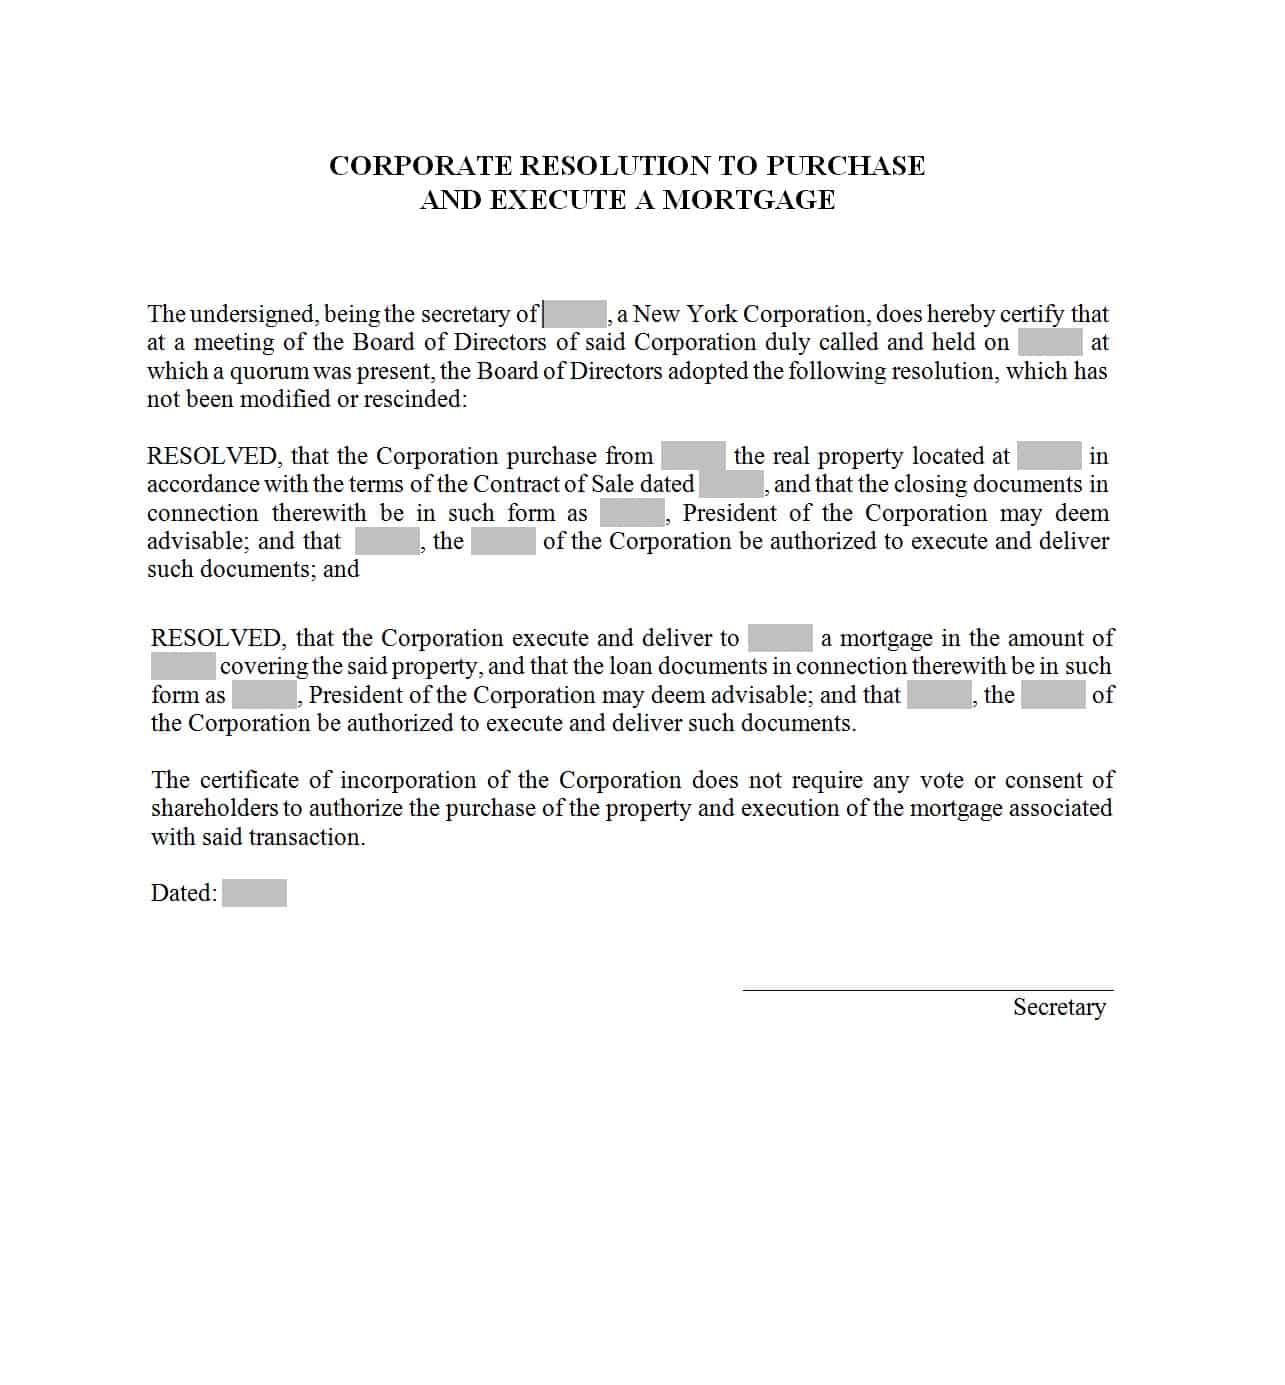 37 Printable Corporate Resolution Forms - Template Lab - Free Printable Legal Documents Forms